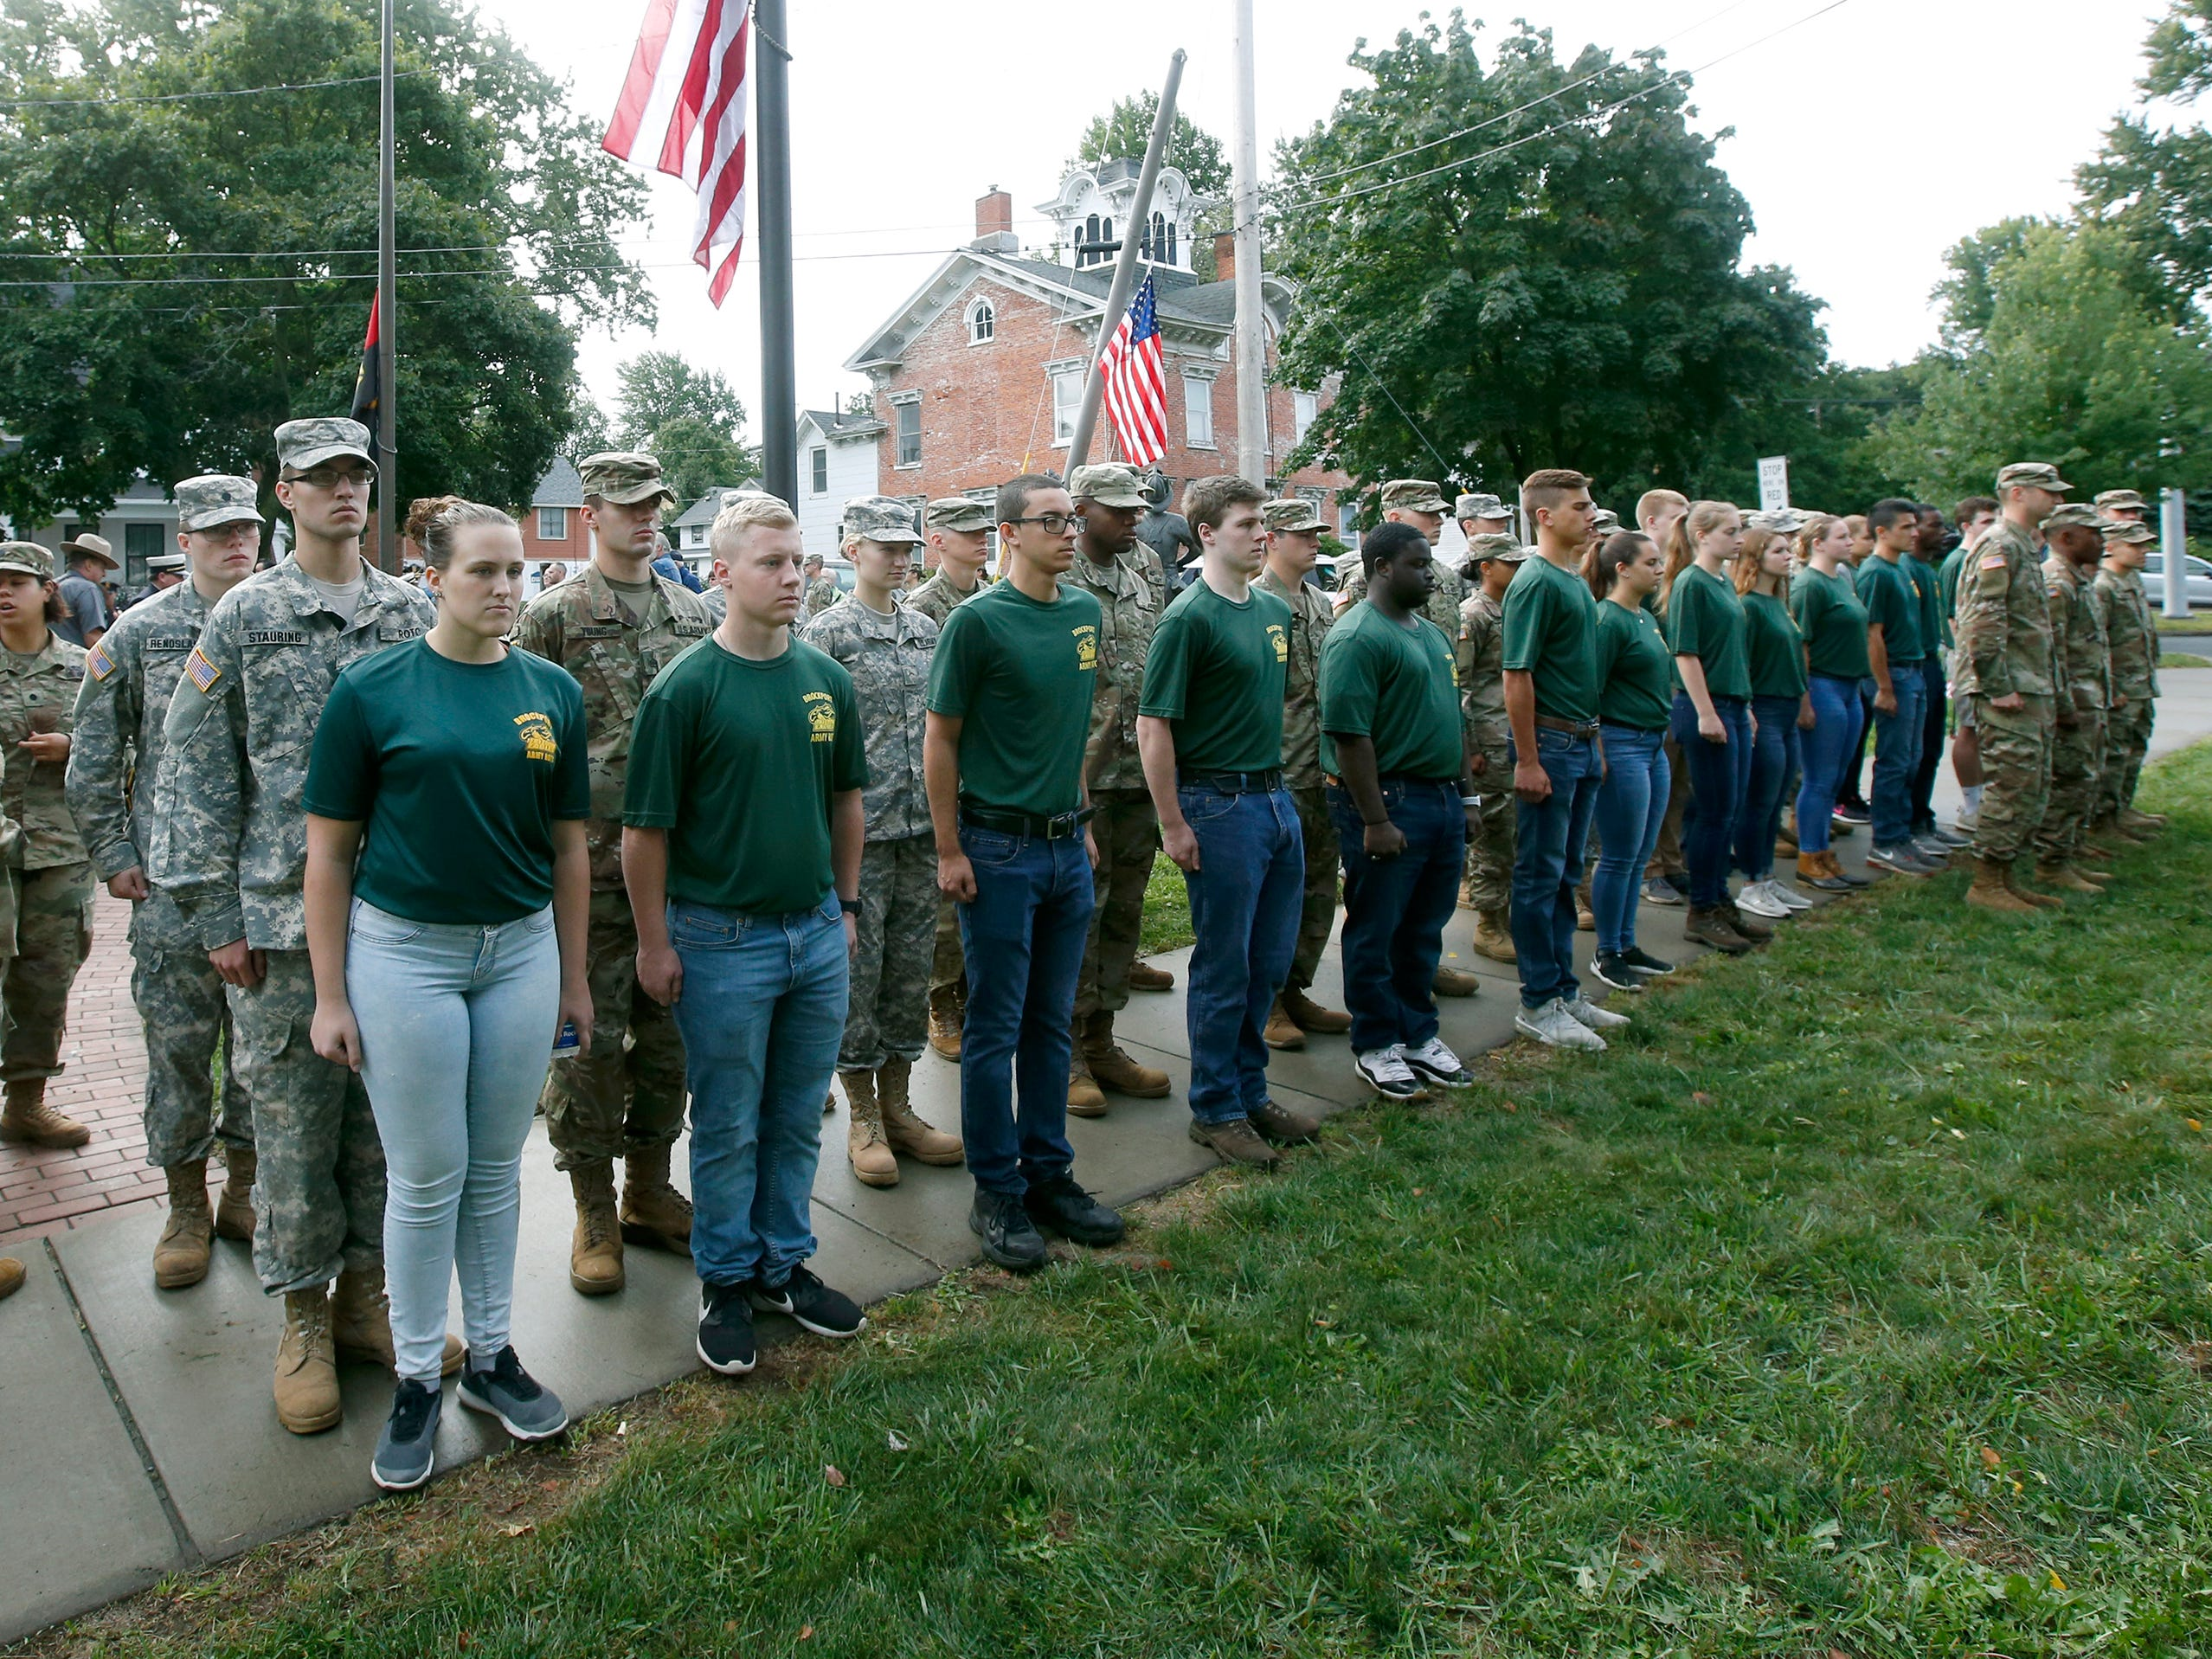 The Freedom Eagles, the College at Brockport's battalion for the ROTC program, stand in formation during the September 11th remembrance service at the Brockport Fire Department, Station 4.